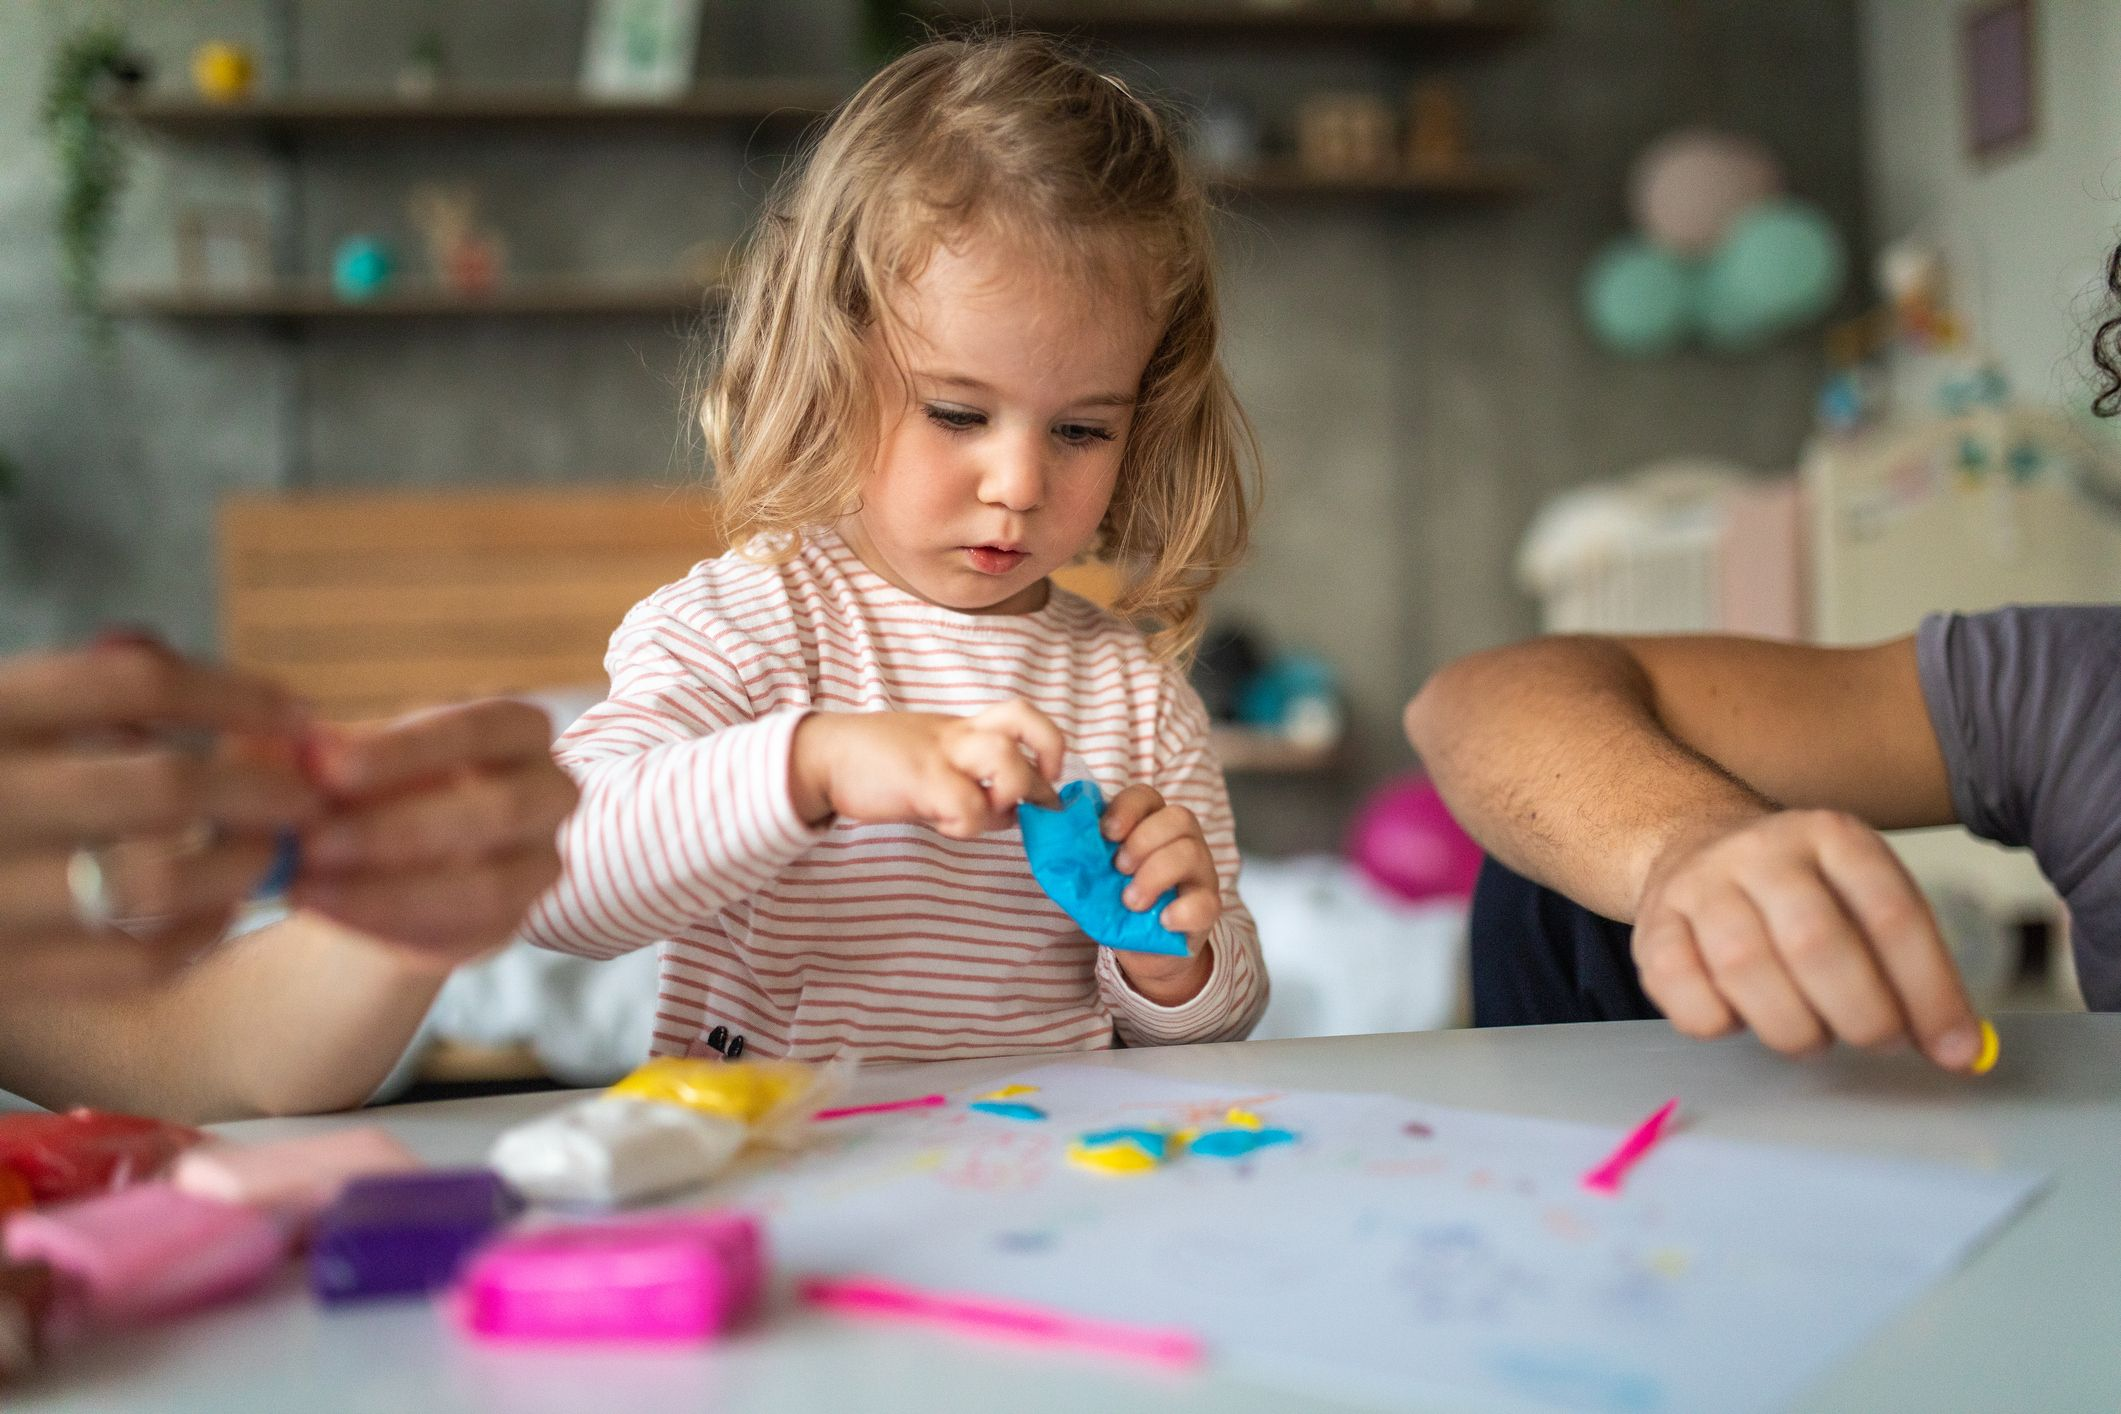 15 Activities For Toddlers That Won't Bore Them To Tears